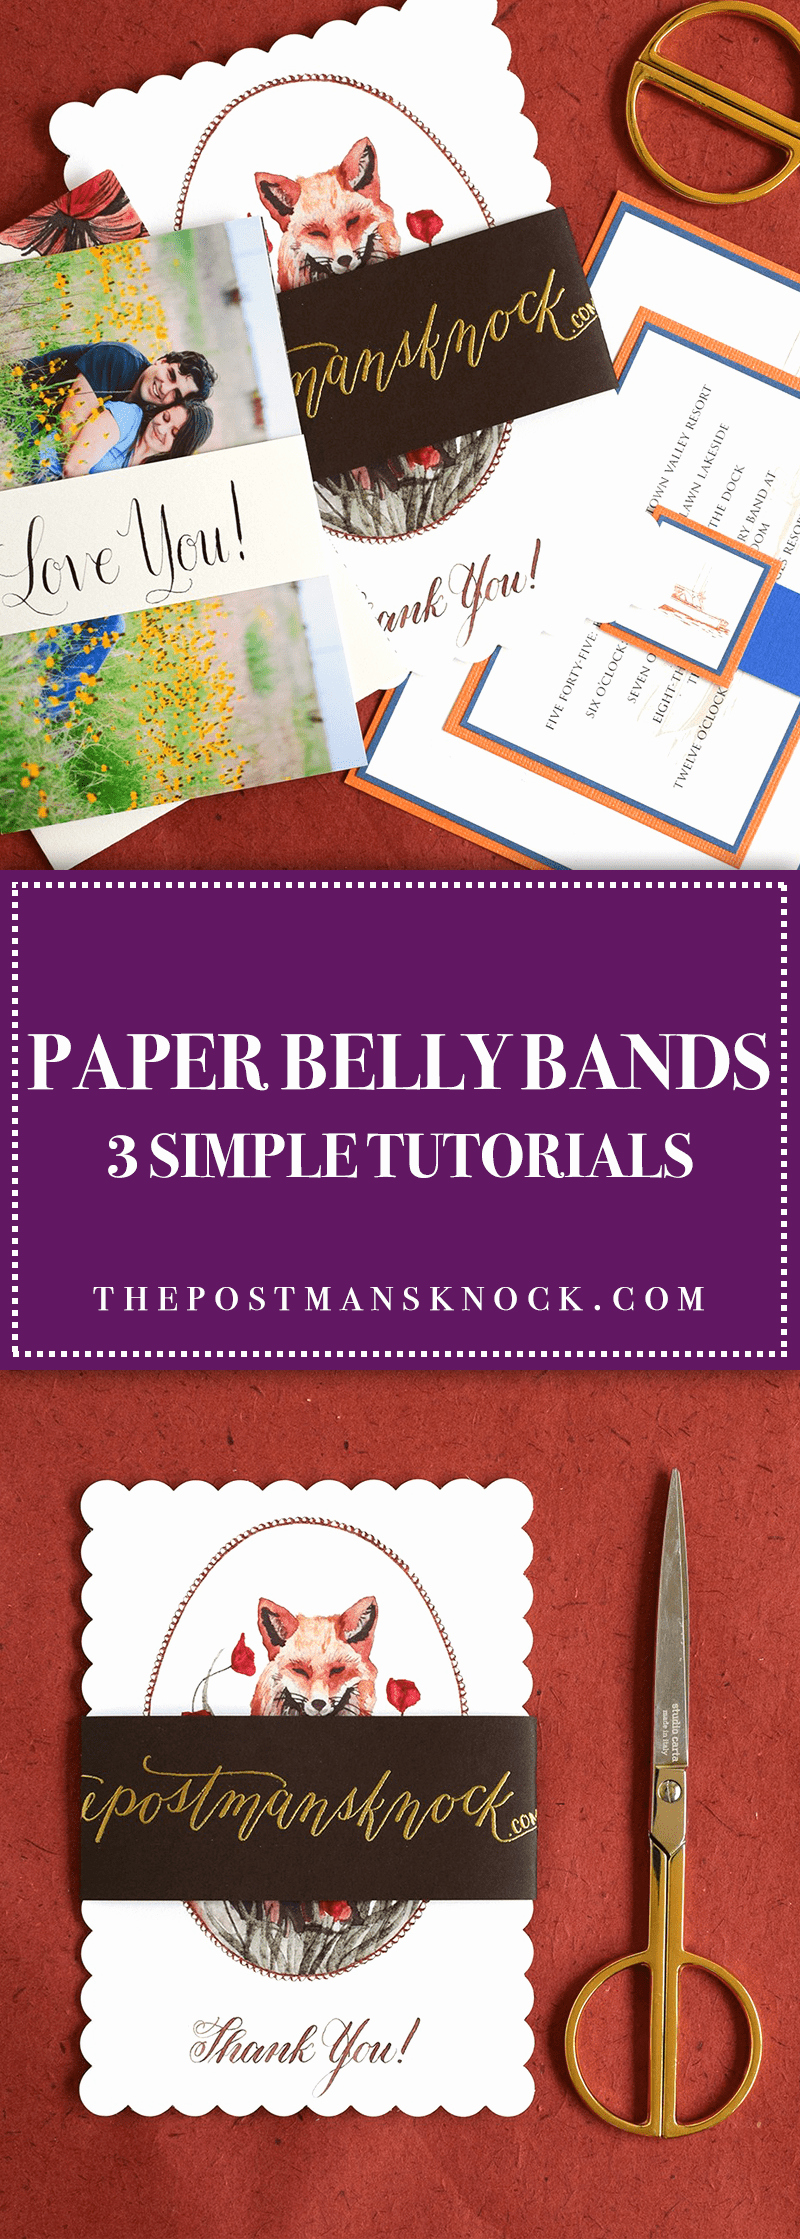 Invitation Belly Band Diy Inspirational Paper Belly Bands 3 Simple Tutorials